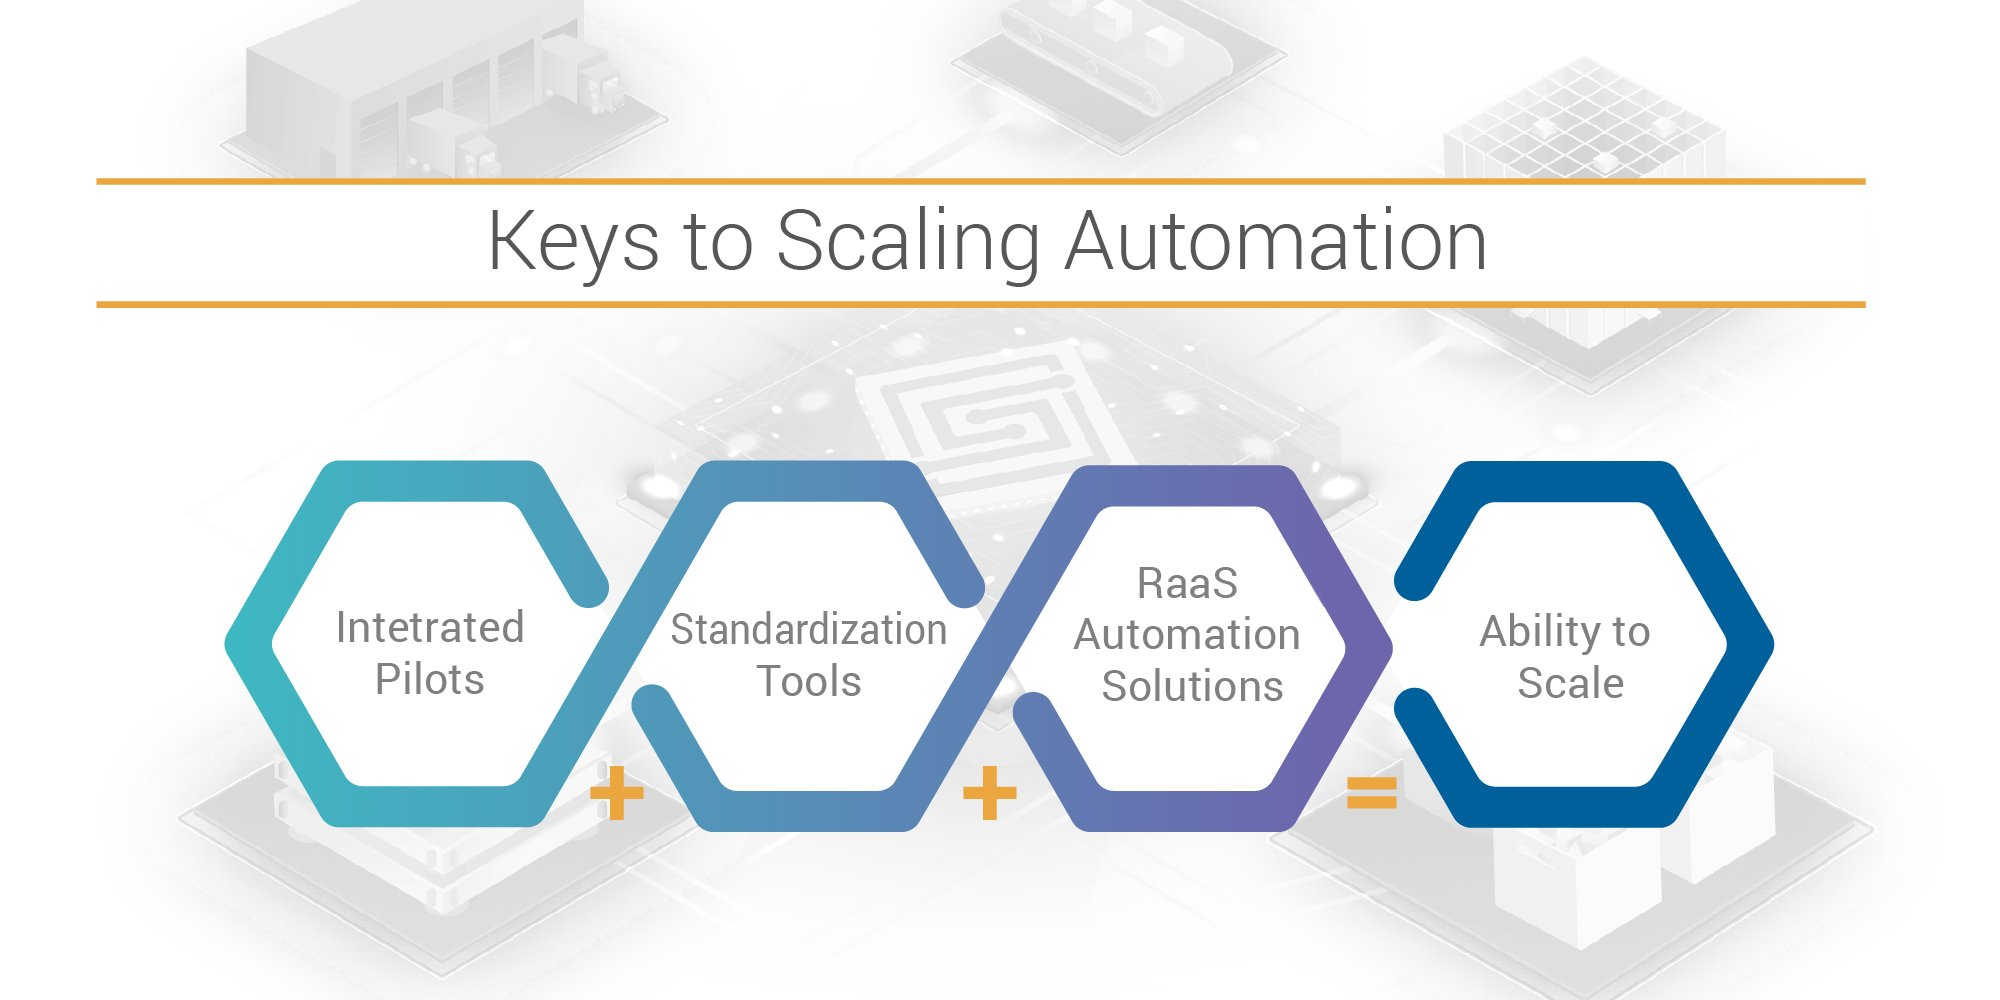 The Key to Scaling Automation? Here Are 3 Vital Ways To Get There